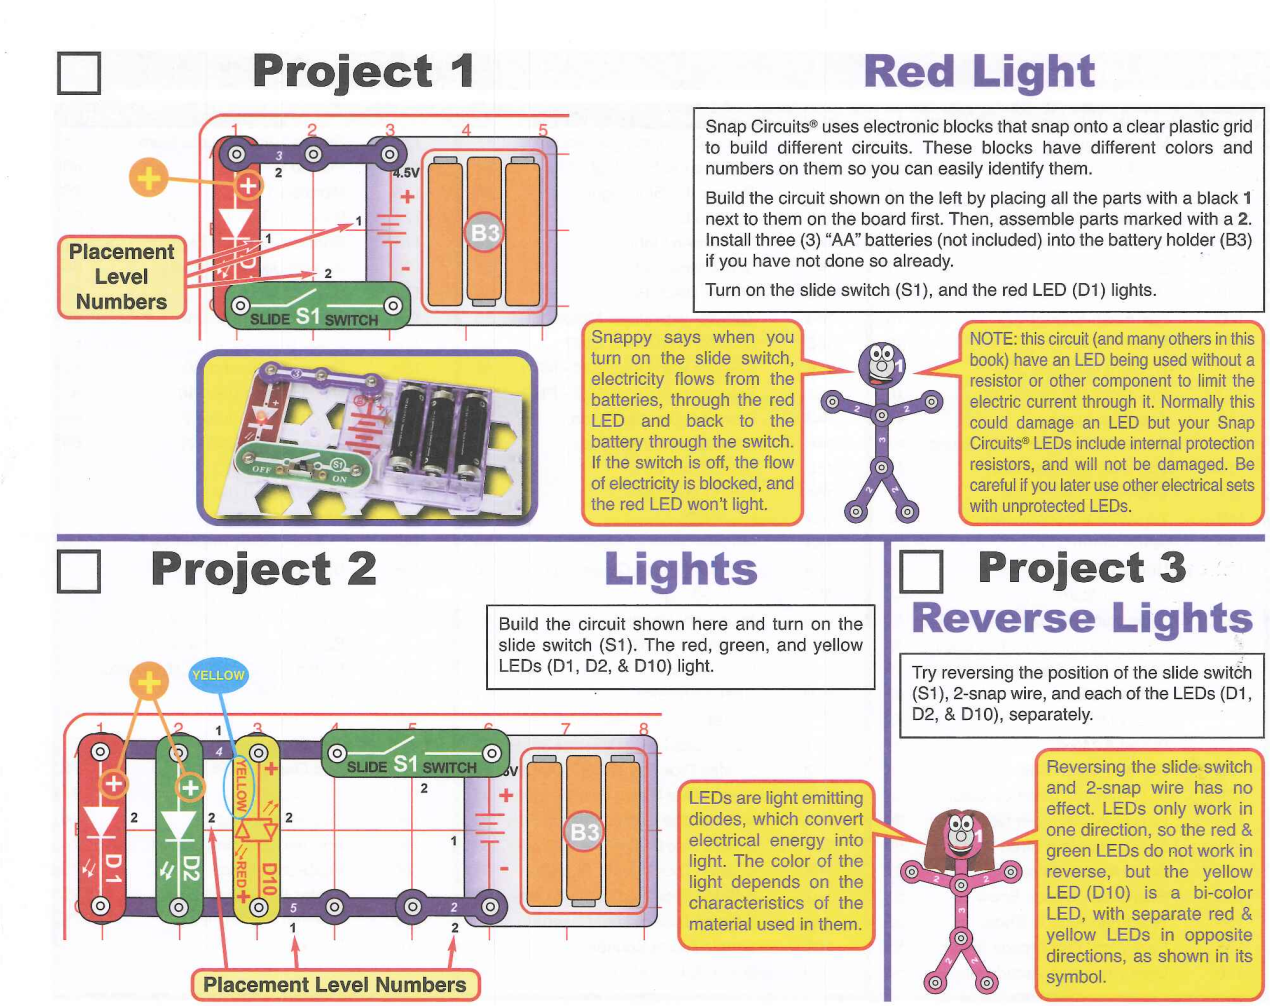 Snap Arcade Information Communication Technologies 9 Electric Circuits Resistors In Series And Parallel Youtube Complete Projects 1 3 Create A Short Video Showcasing Your Completed Explain How They Work Upload The To Channel